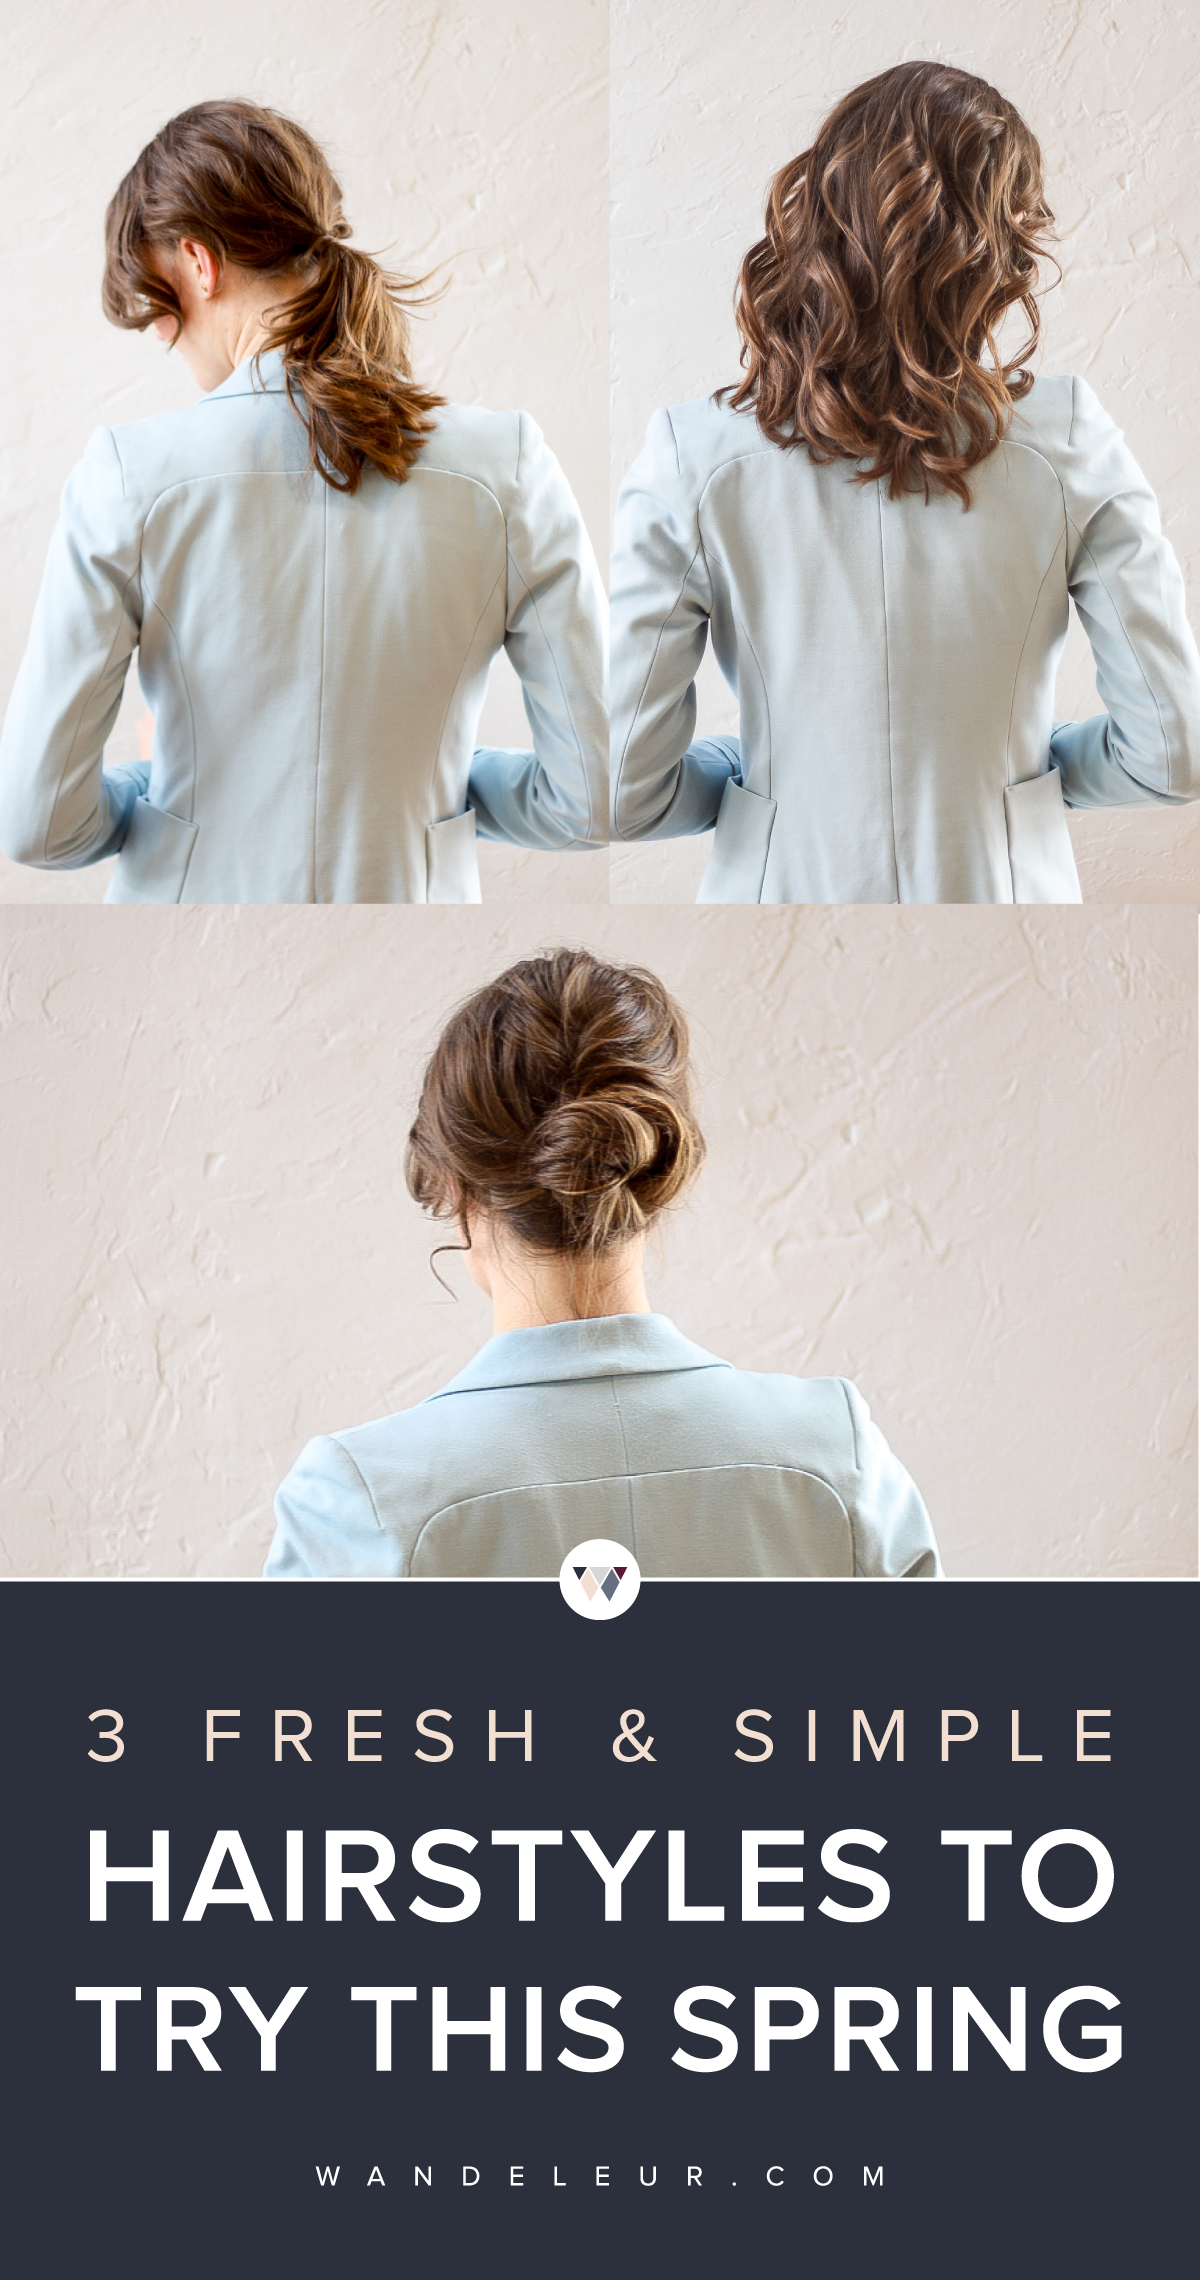 hairstyles for spring, 3 simple hairstyles, wandeleur, easy updo